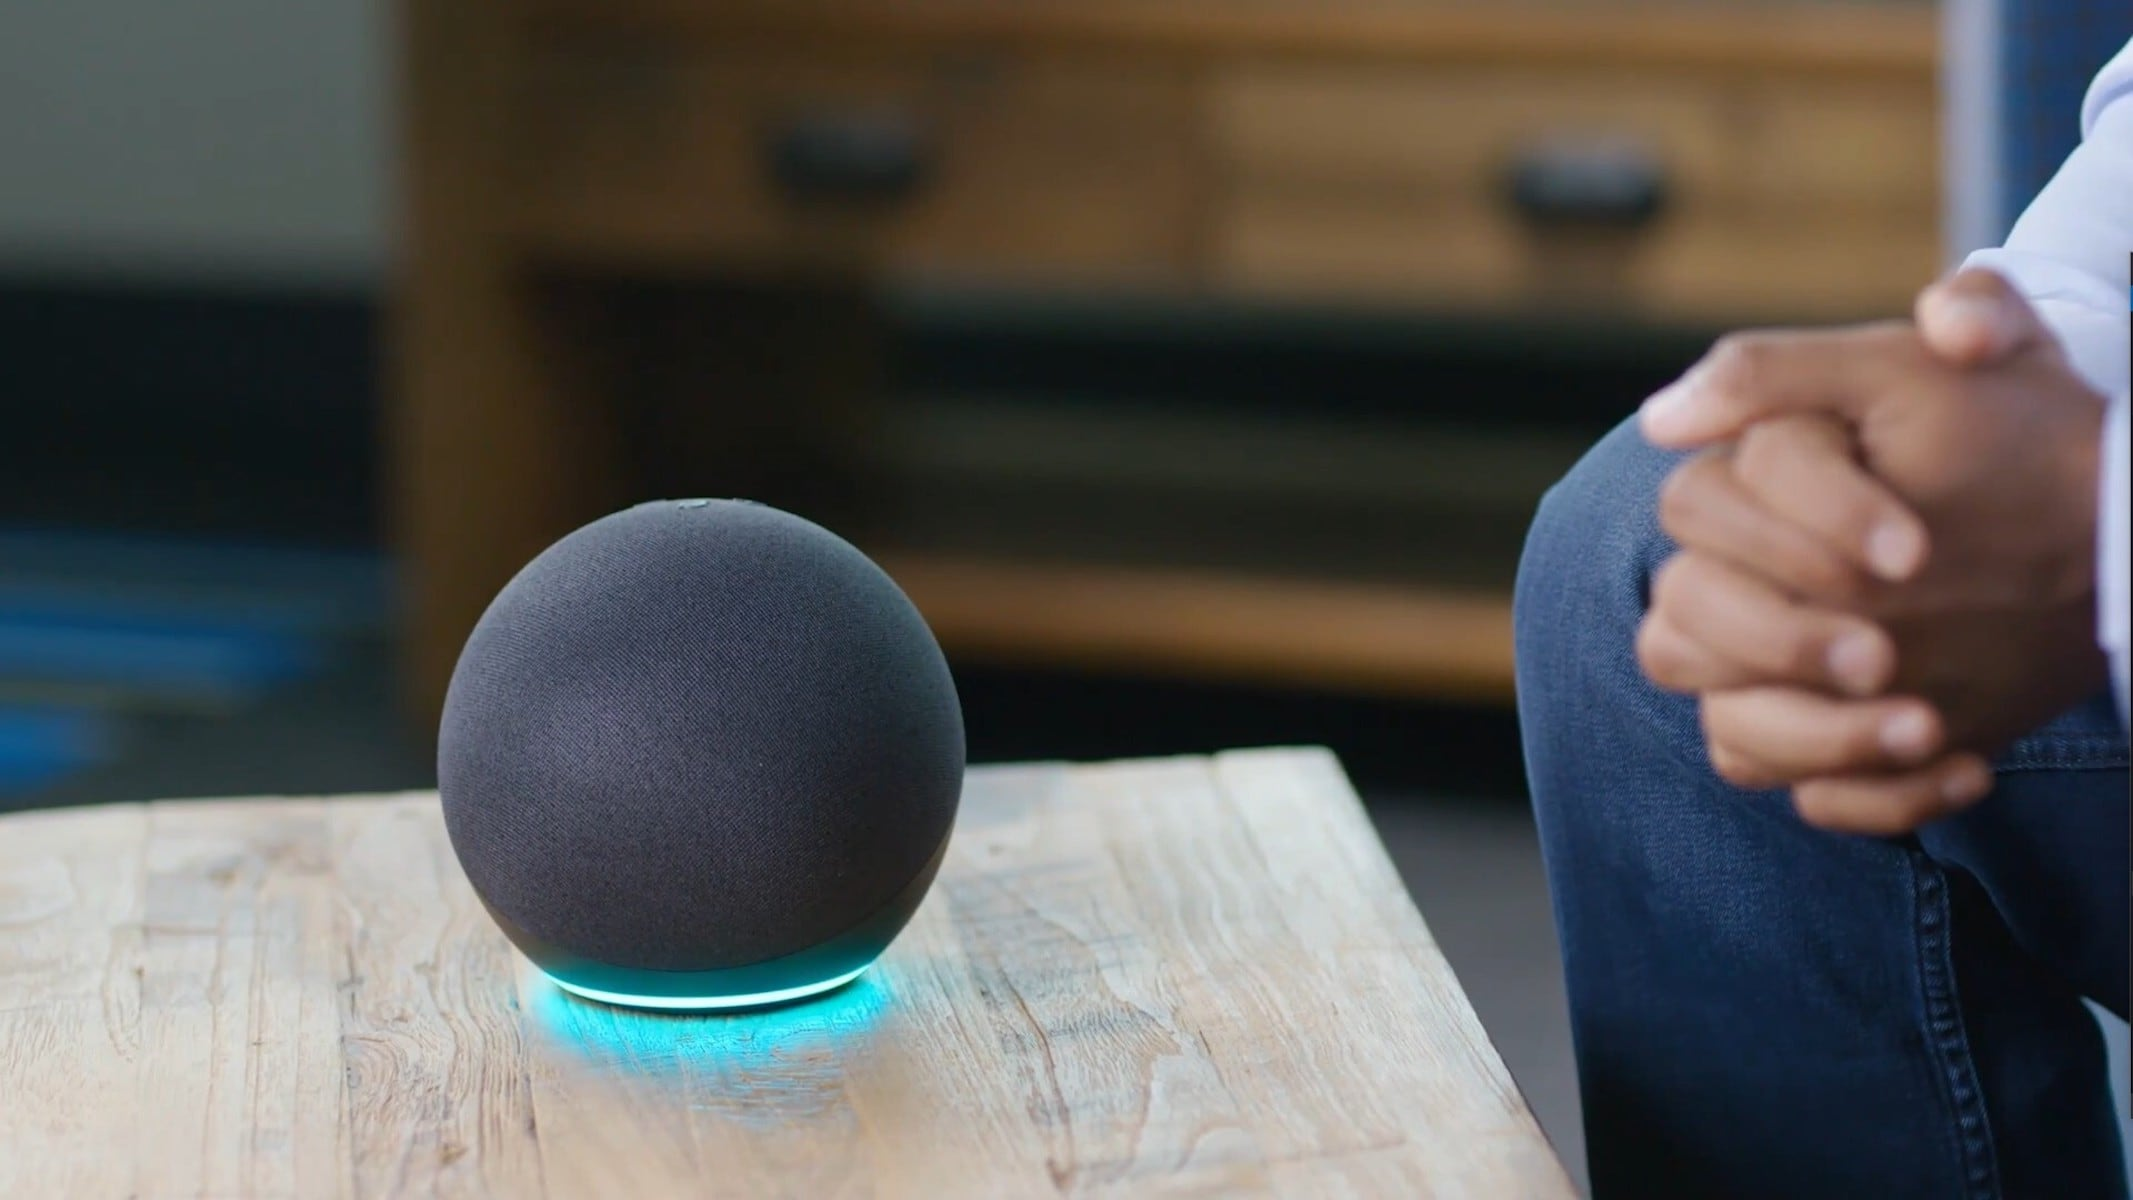 The New Spherical Echo on a Table